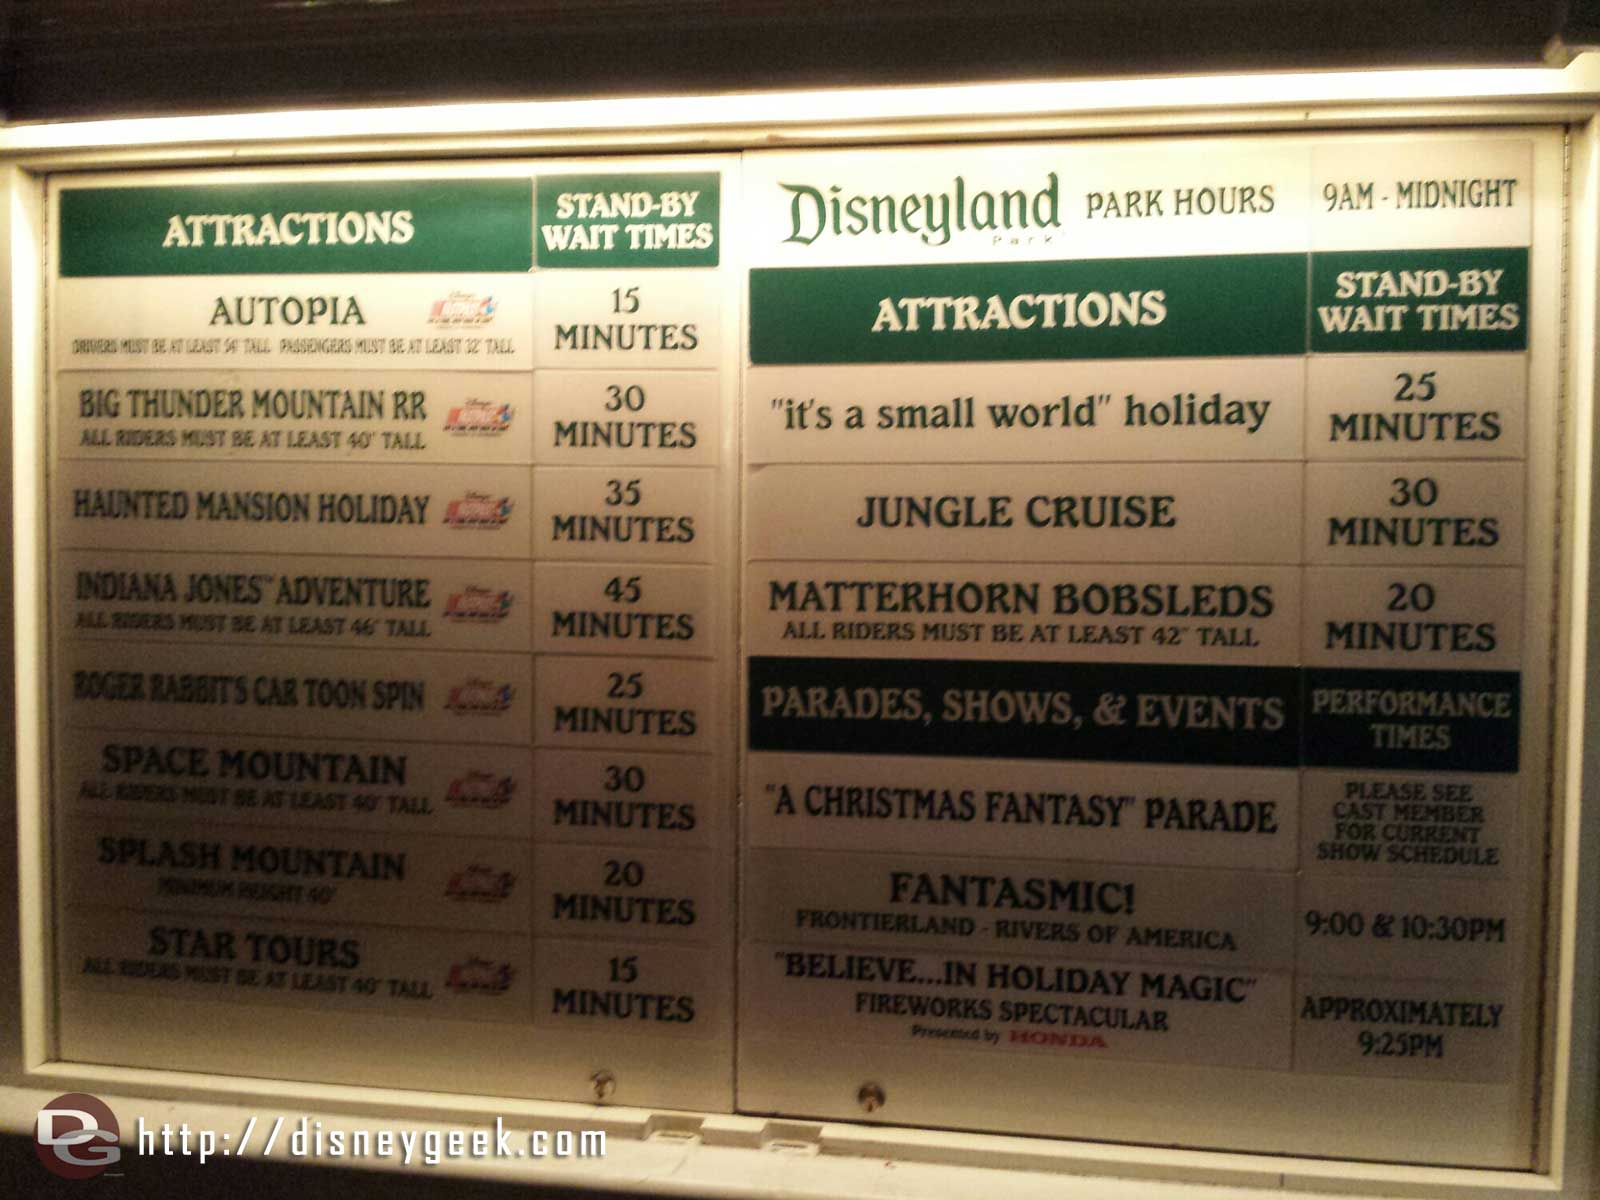 #Disneyland waits as of 5:29pm